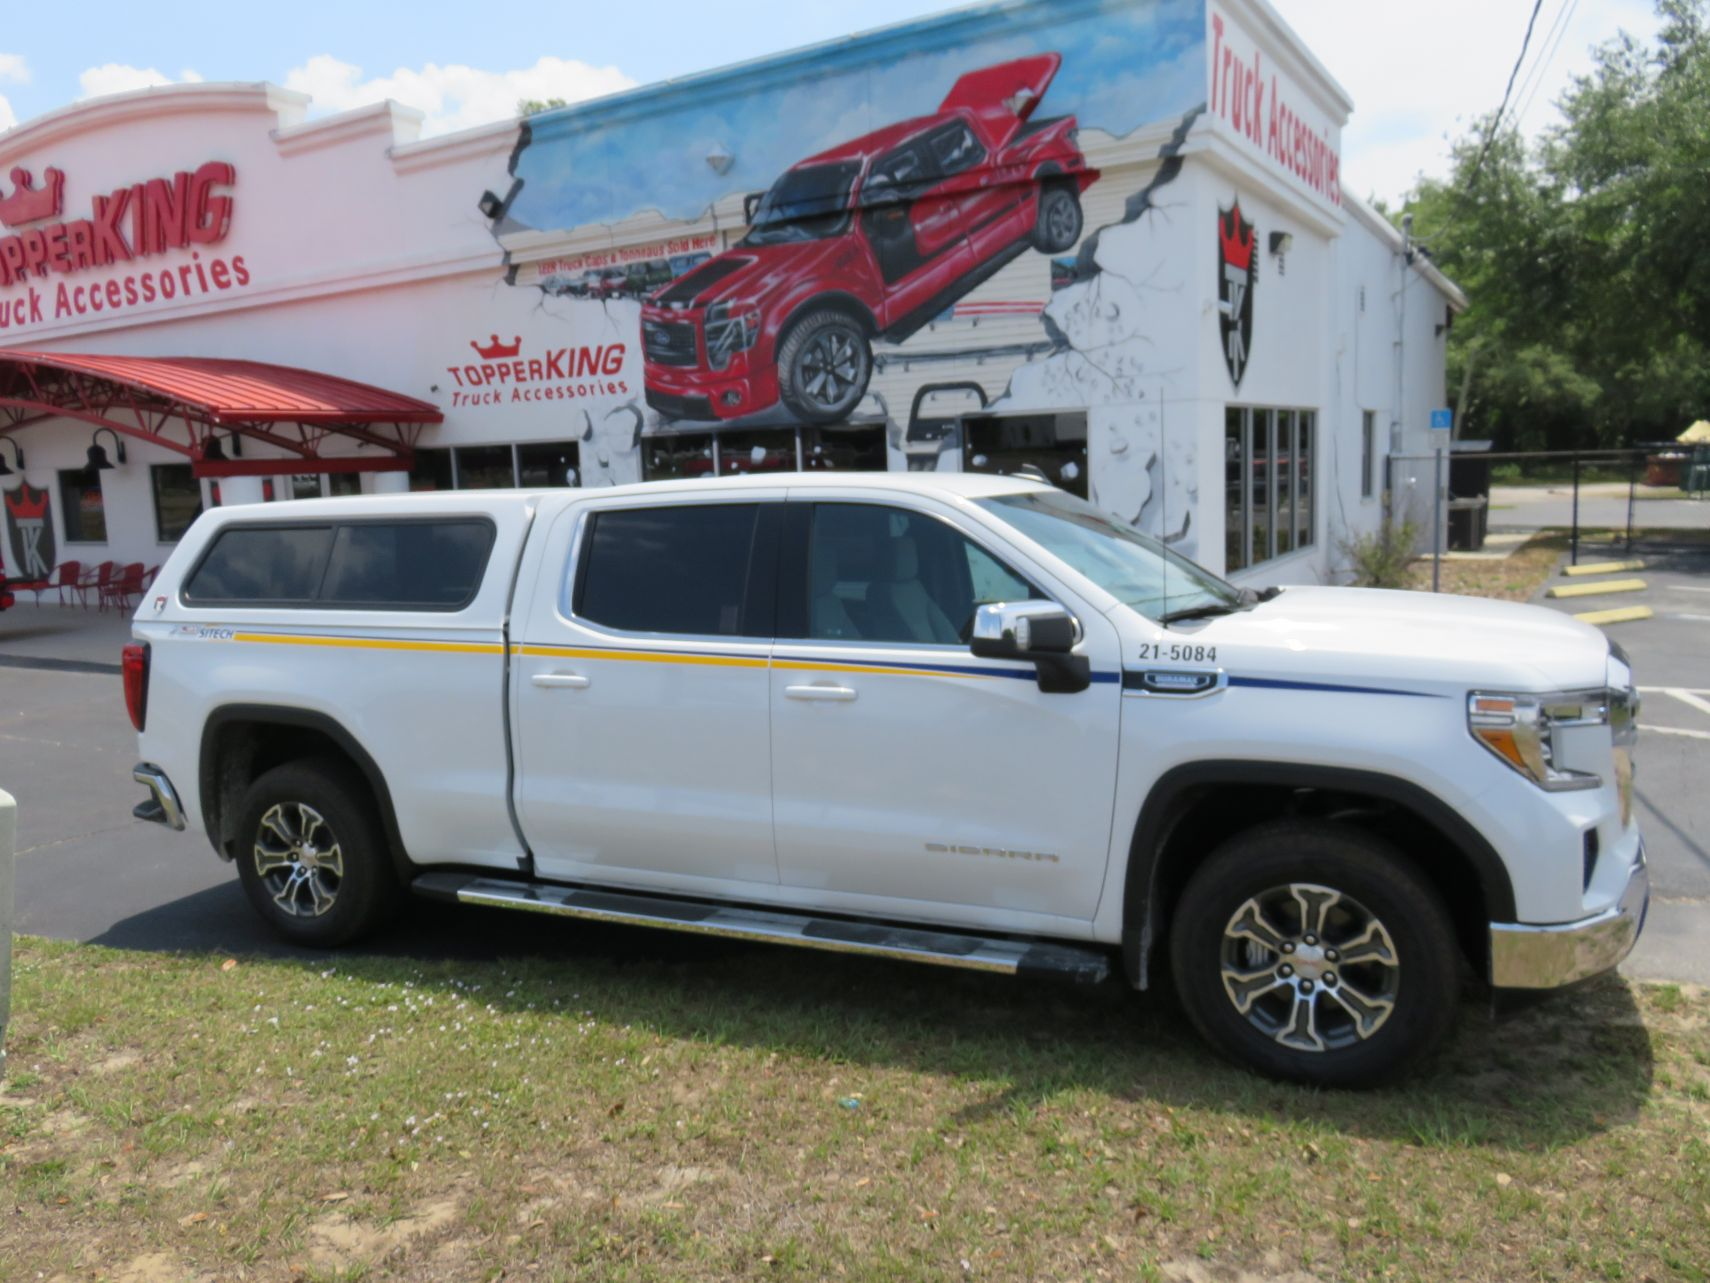 2020 GMC Sierra with TK Defender, Running Boards, BedSlide, Hitch. Call TopperKING Brandon 813-689-2449 or Clearwater FL 727-530-9066 today!